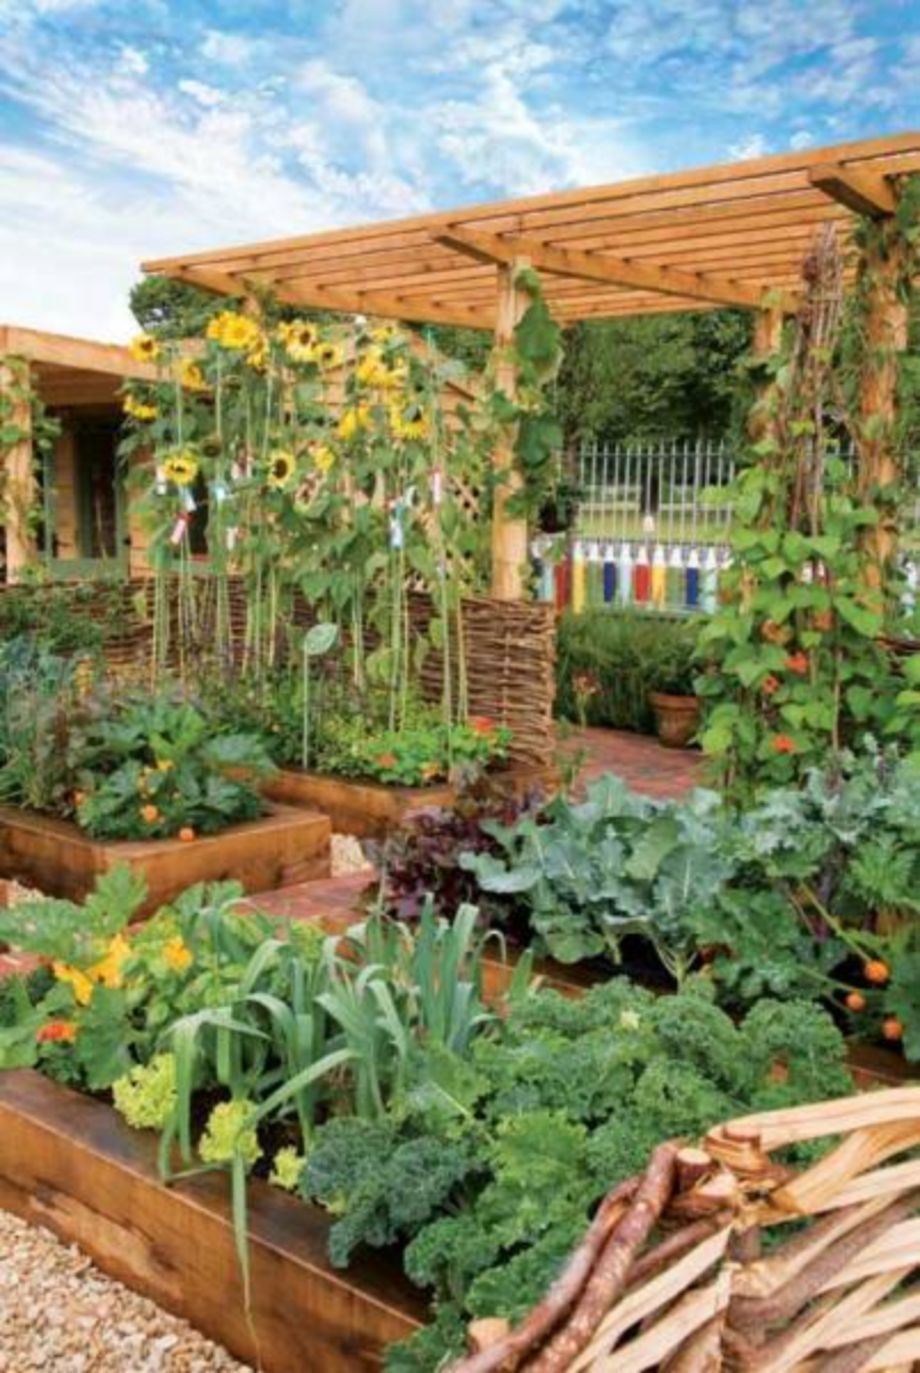 35 Cute and Simple School Garden Design Ideas | grow ...